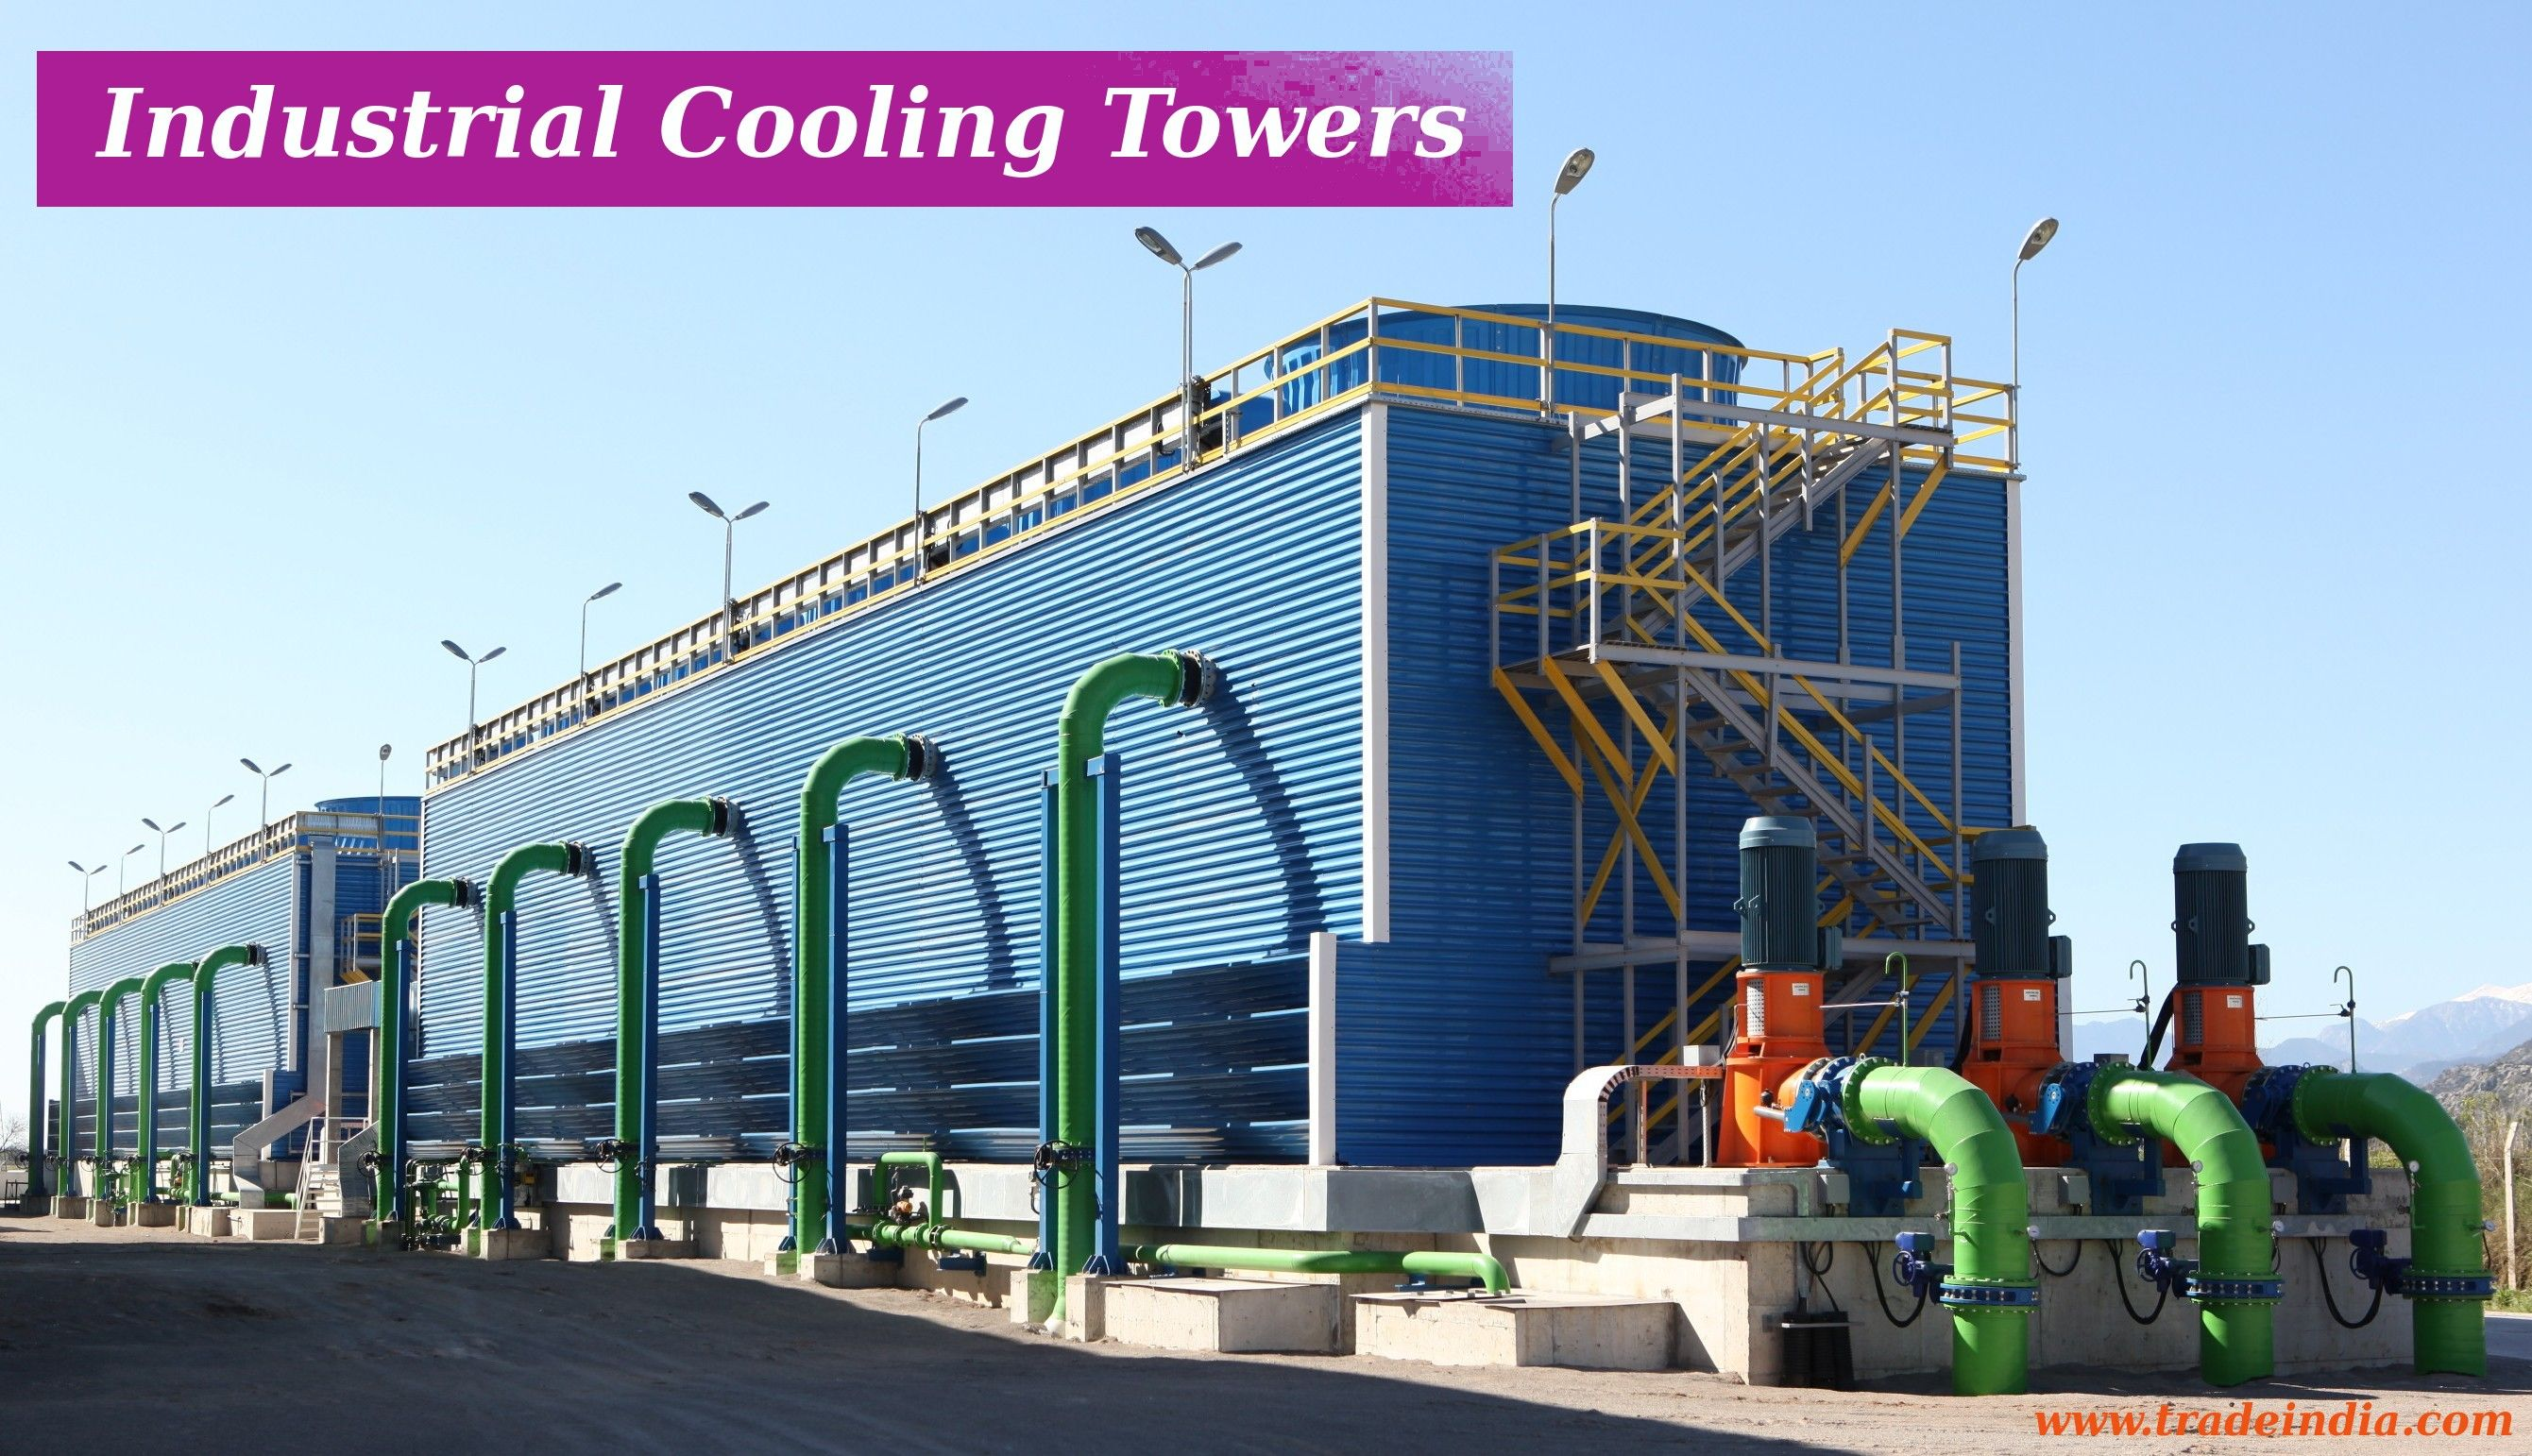 Visit Here Industrial Cooling Towers Which Are Used To Remove Heat